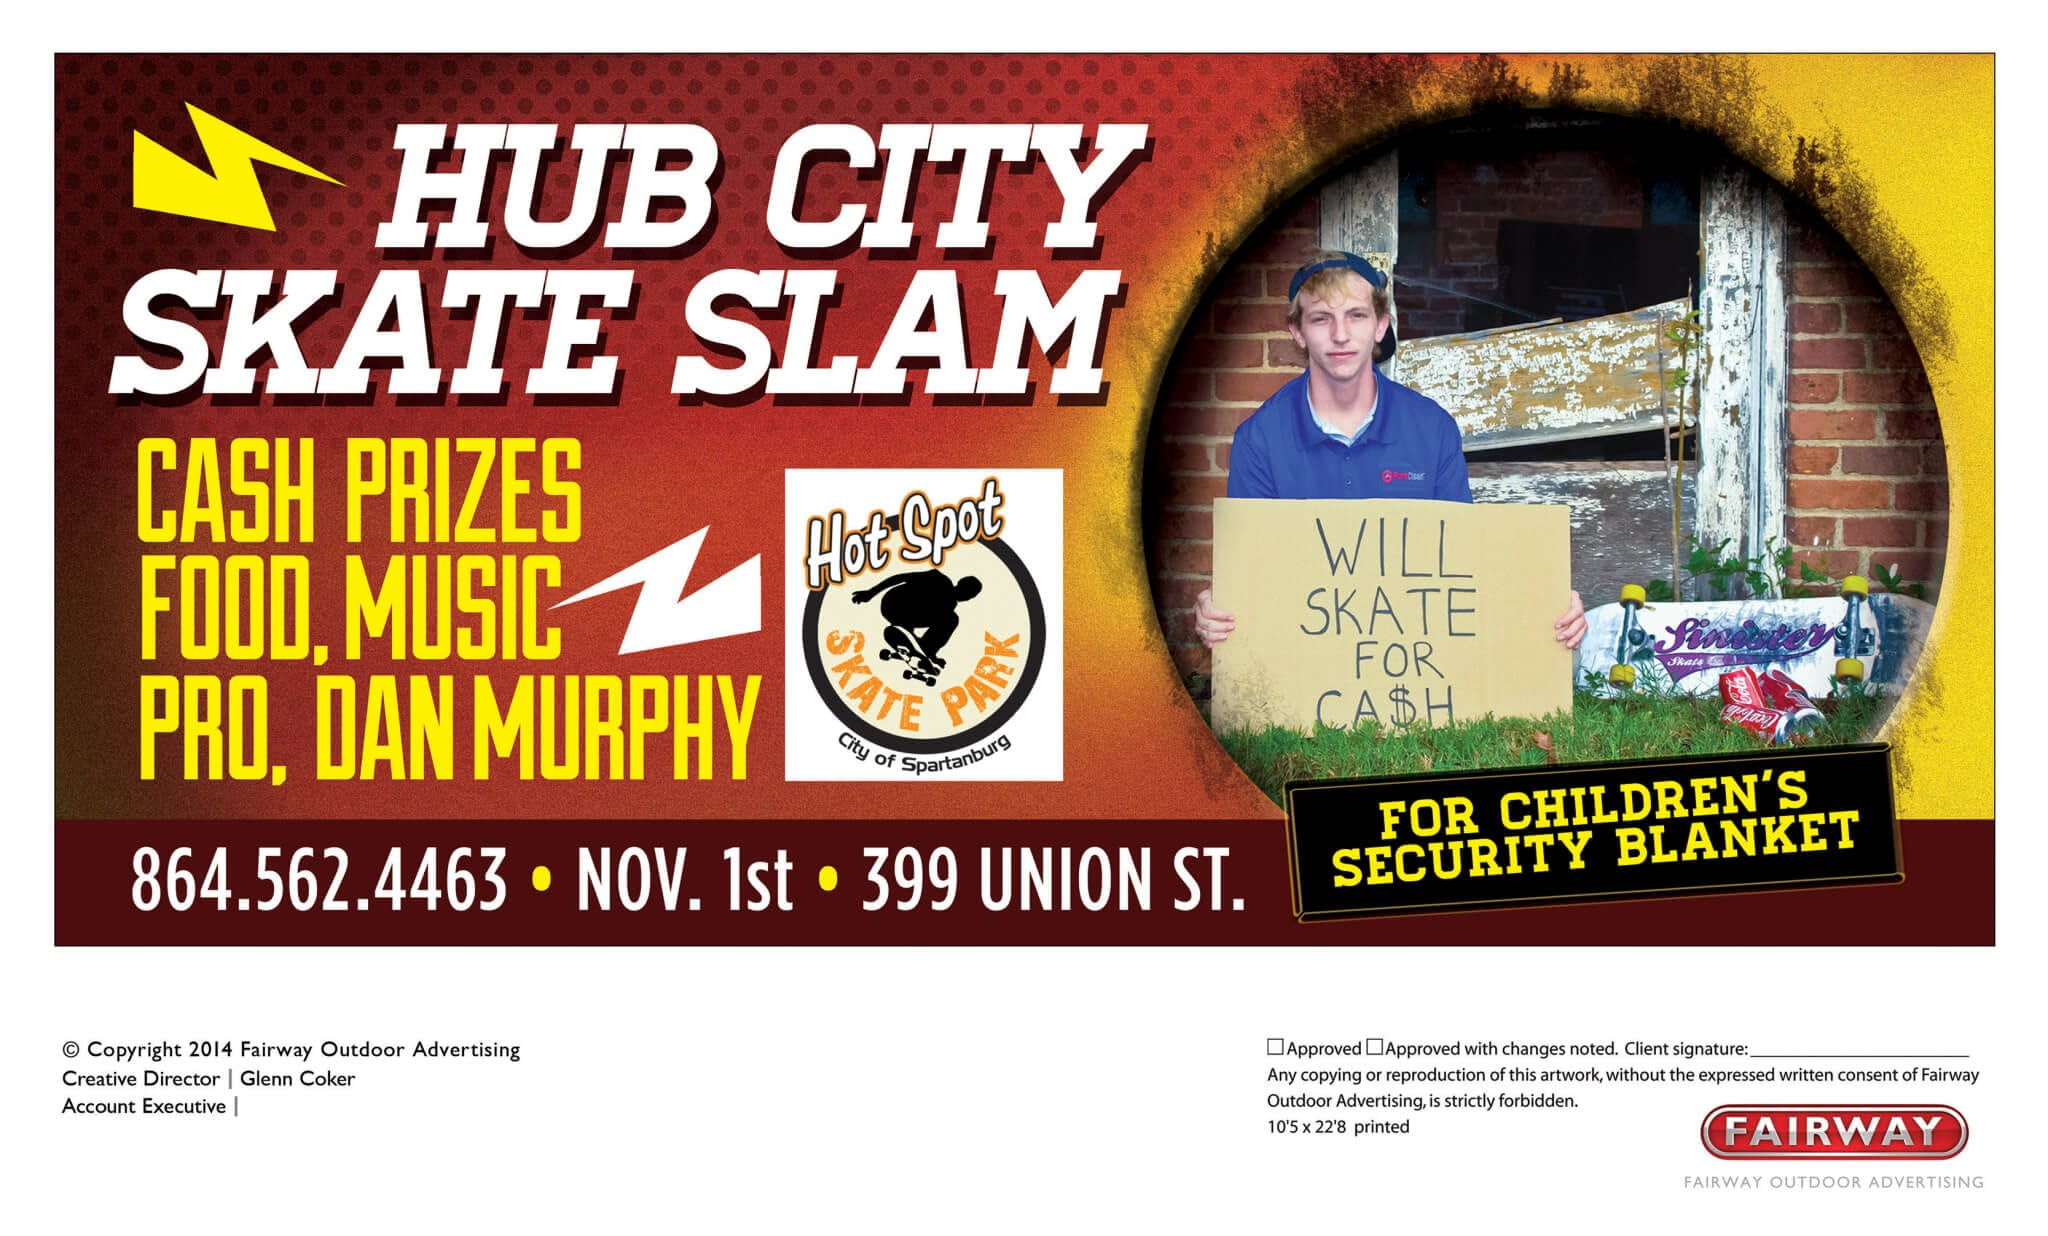 Hub City Skate Slam Poster, Banner, Billboard